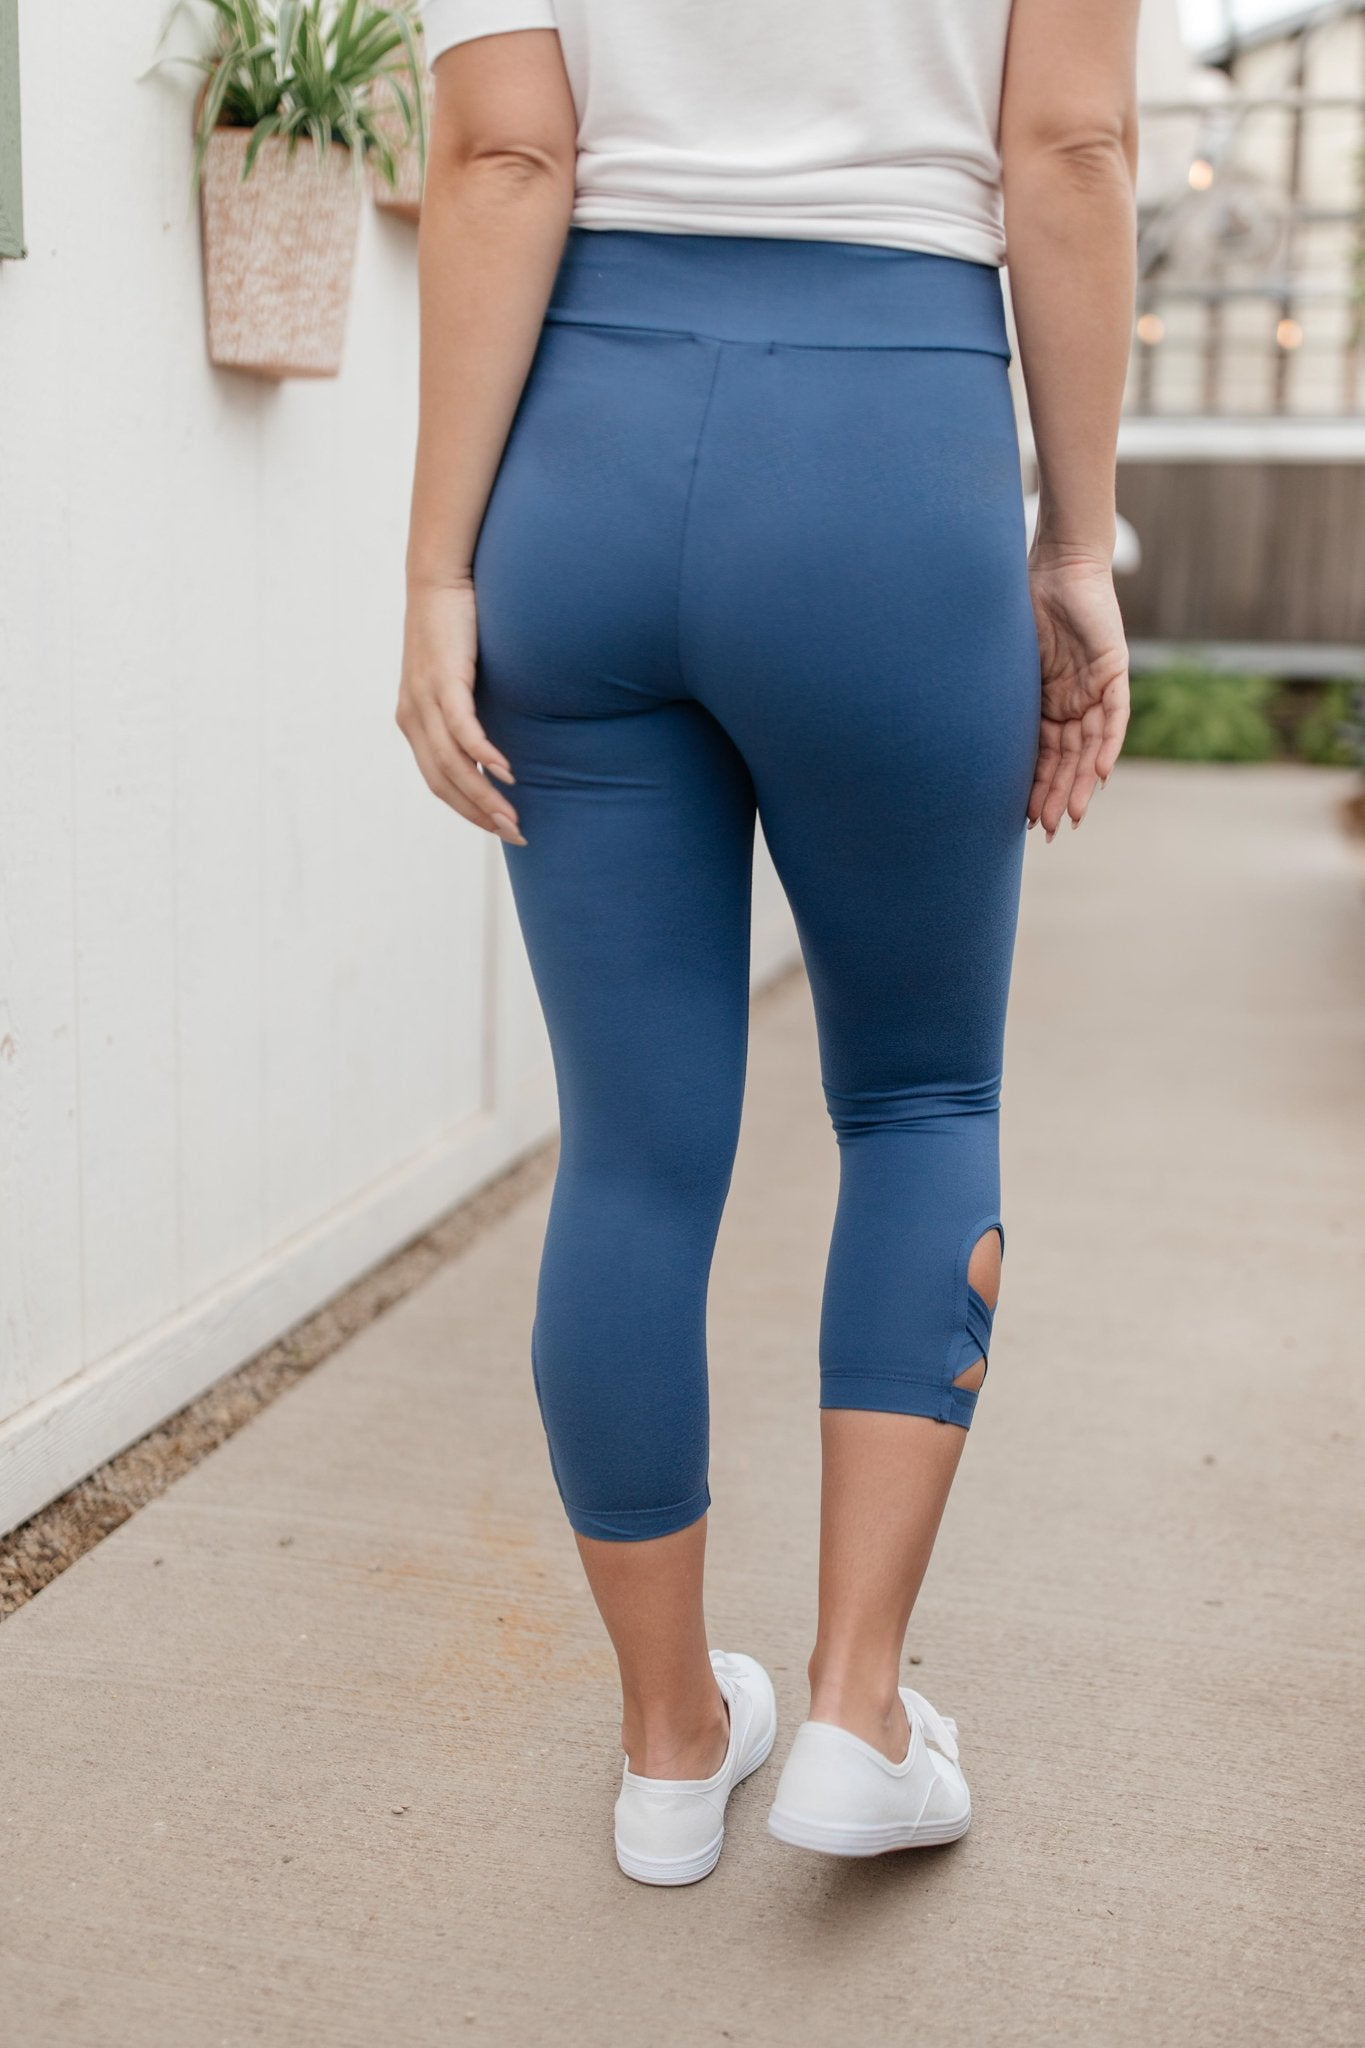 More Than Loungewear Leggings in Blue